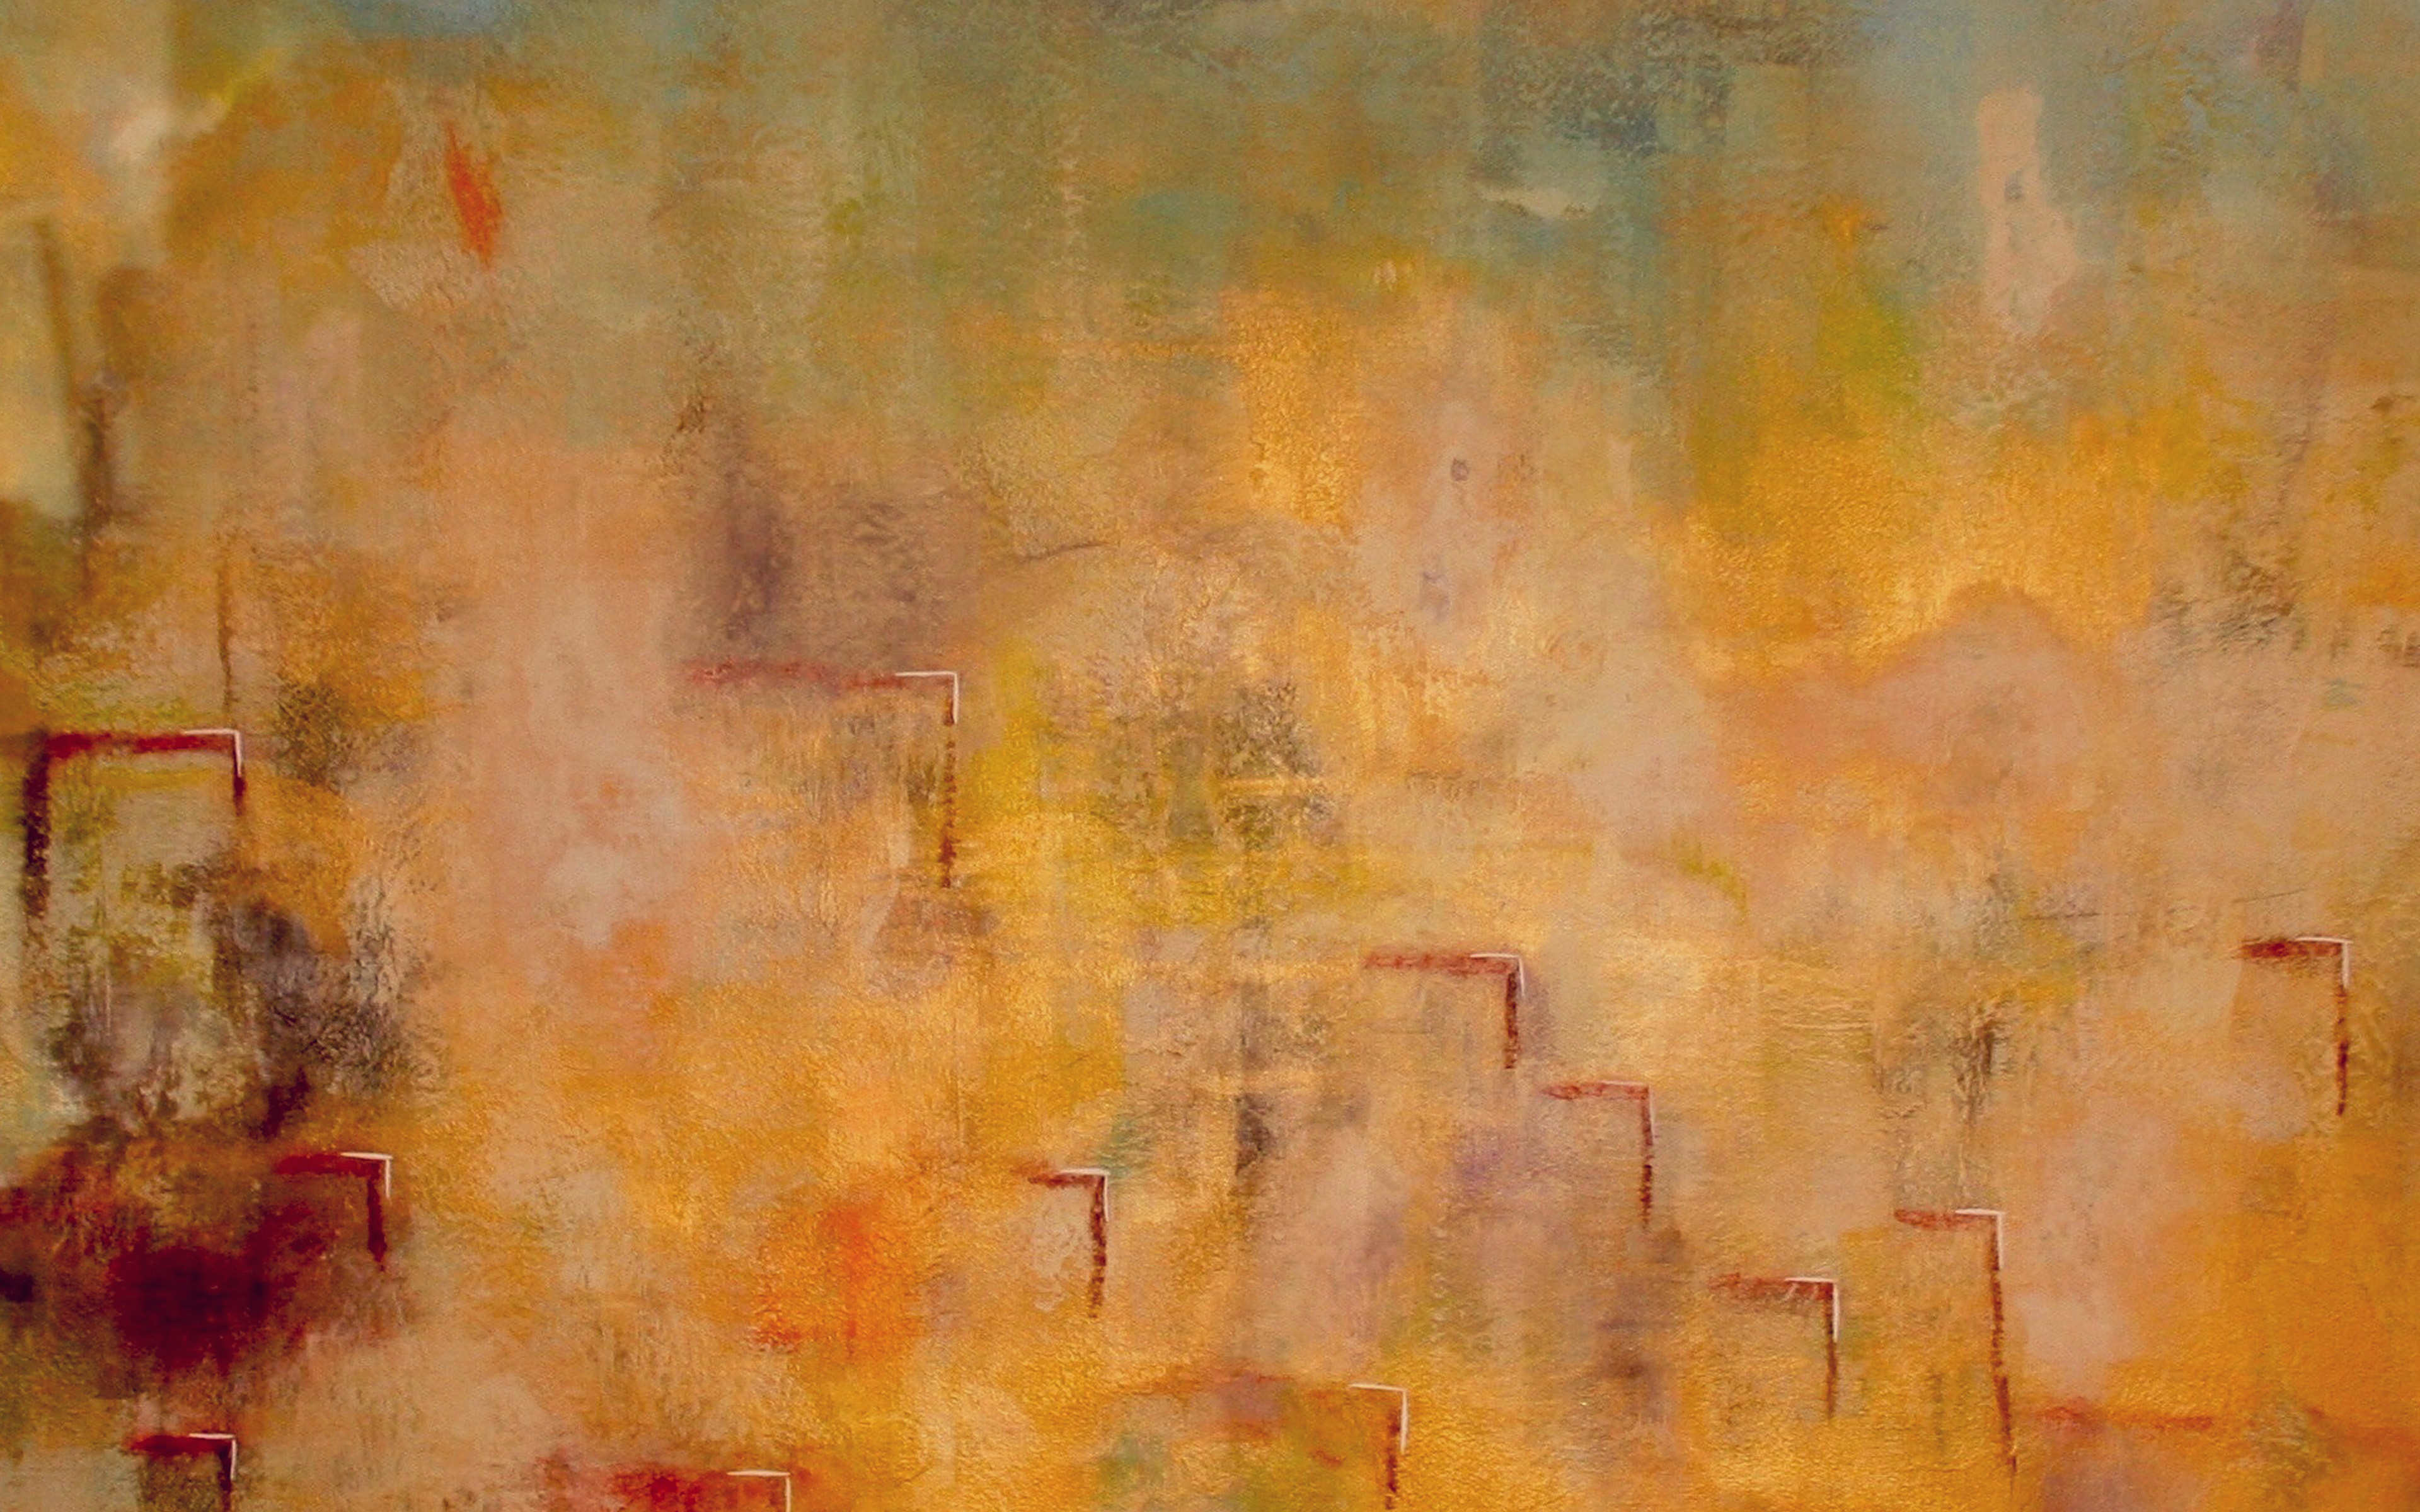 essays on art work Writing an art history paper midterms are over and your art history professor wants an essay on art - now what but color field painting is less about the process of making the work, which is at the heart of action painting.